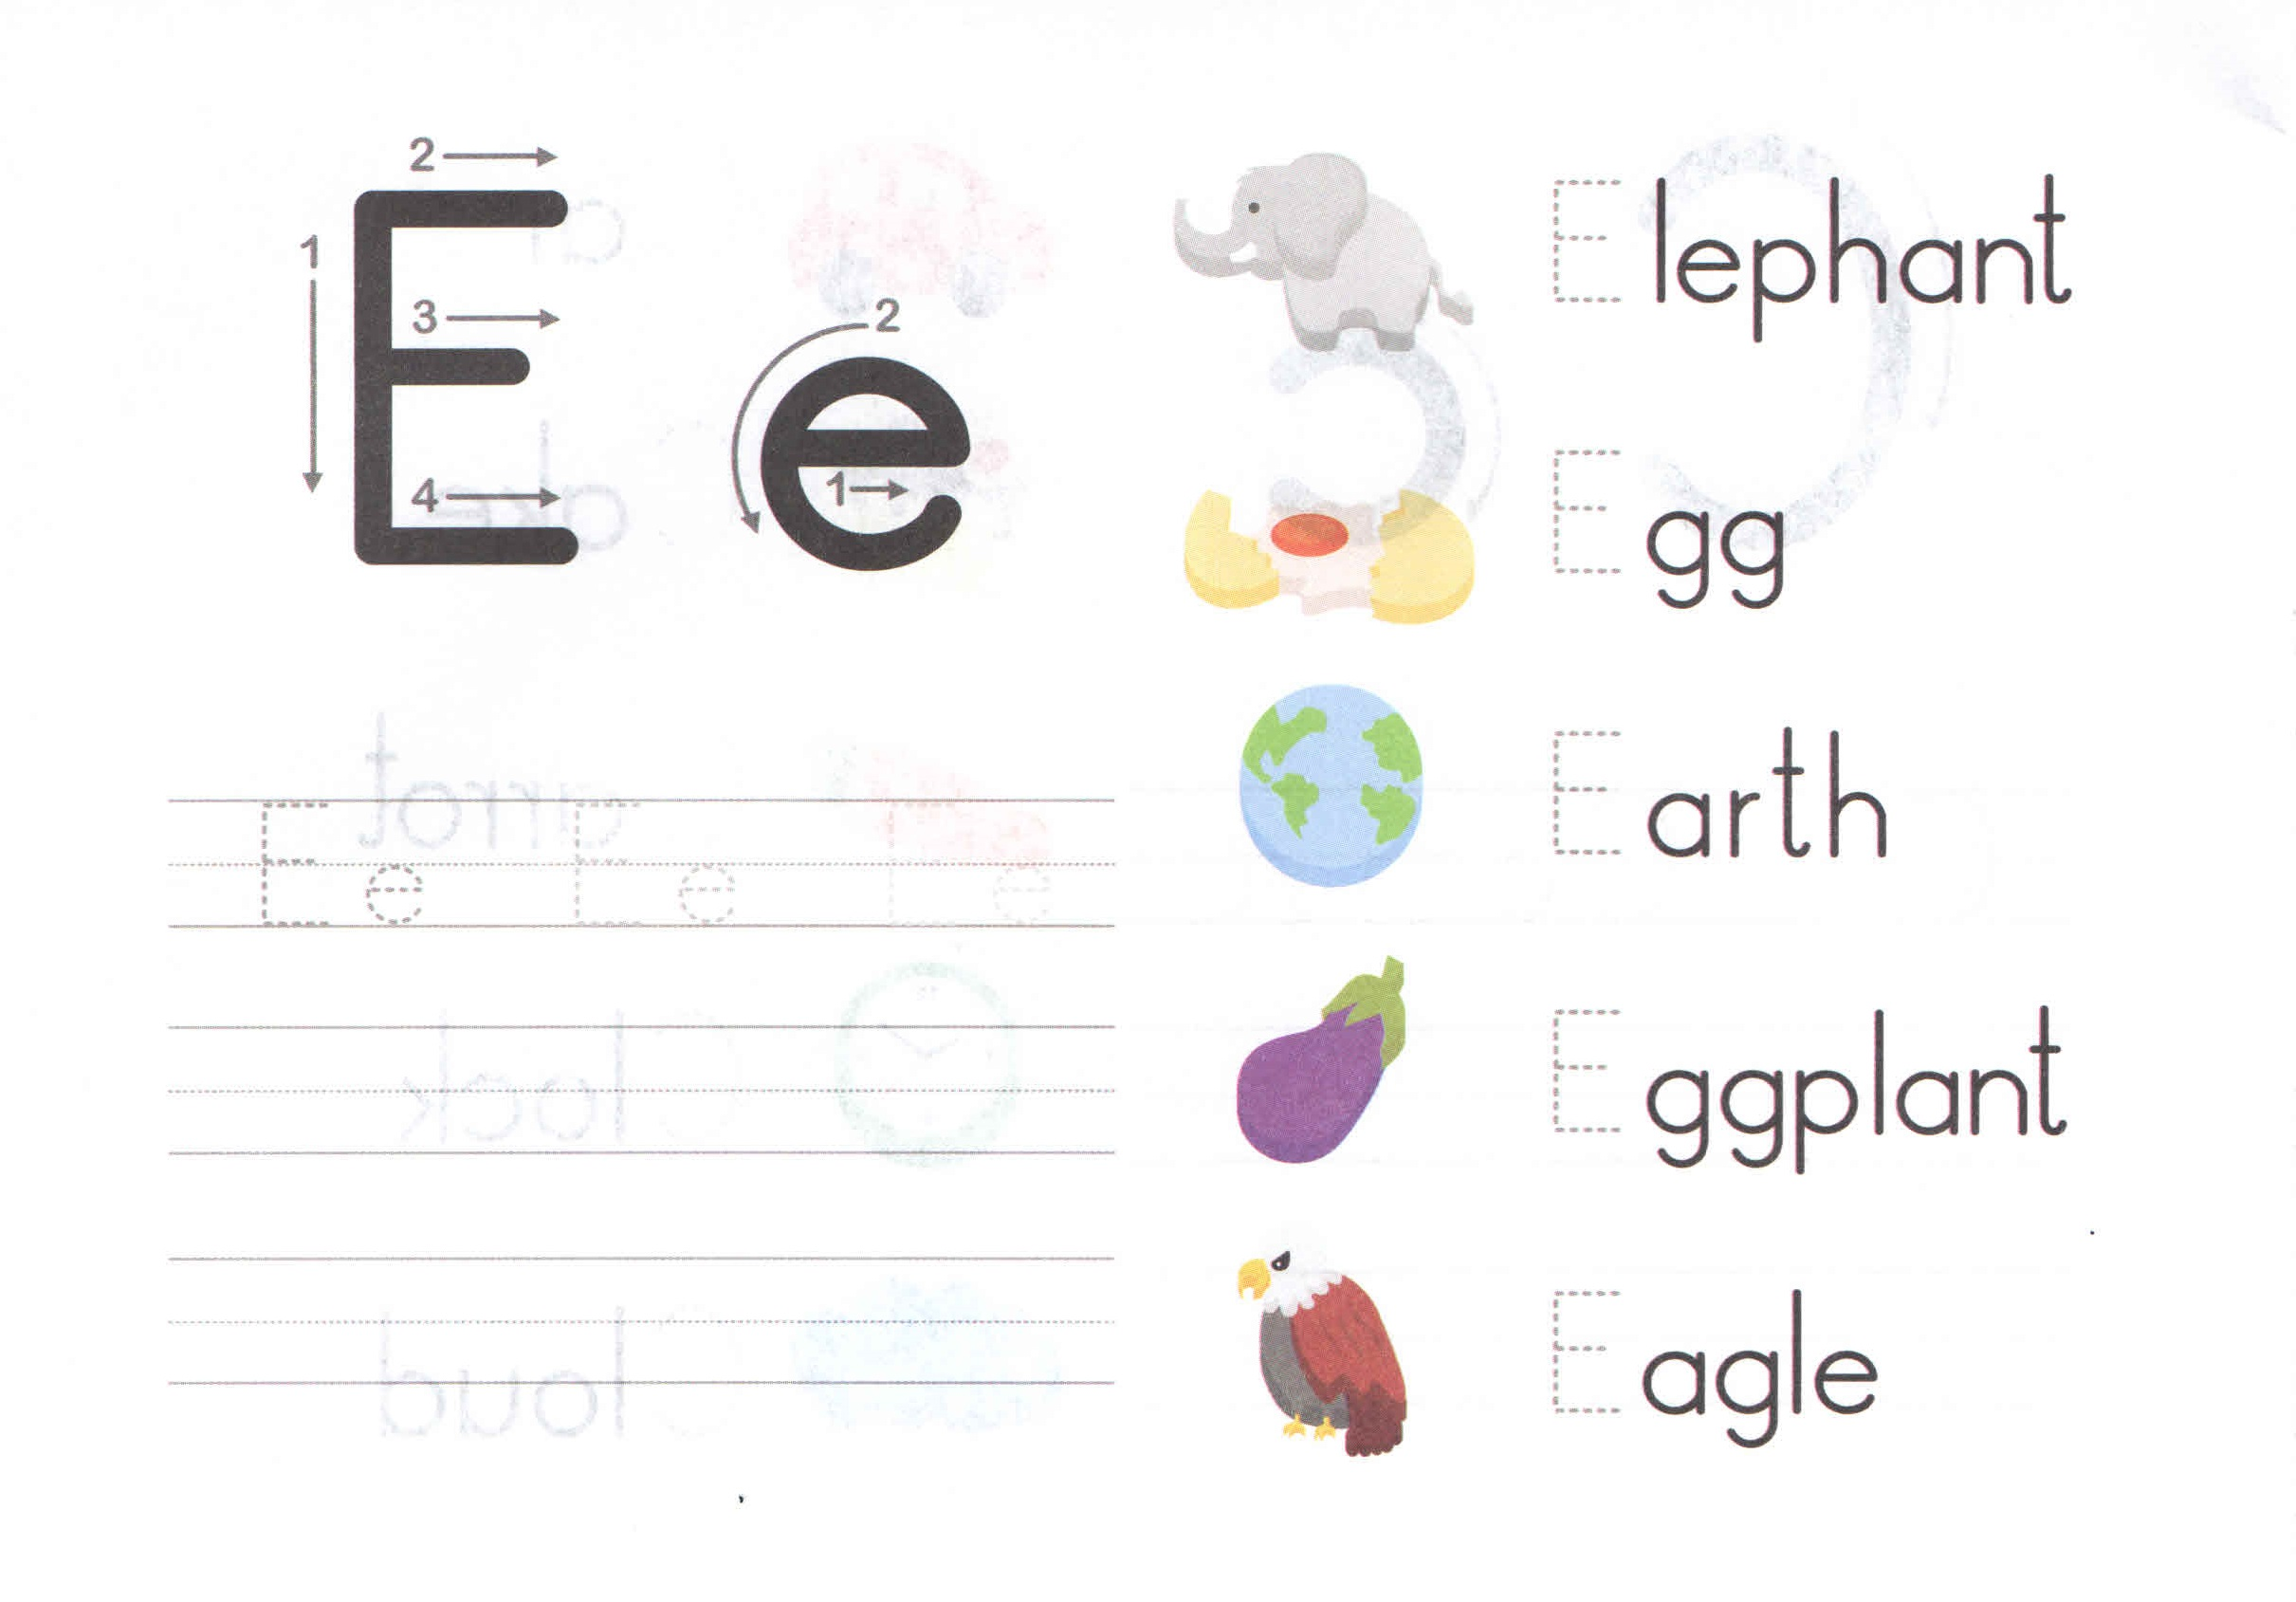 Free Worksheet Letter E Worksheets For Preschool alphabet worksheets archives preschool crafts capital and small letter e worksheet for